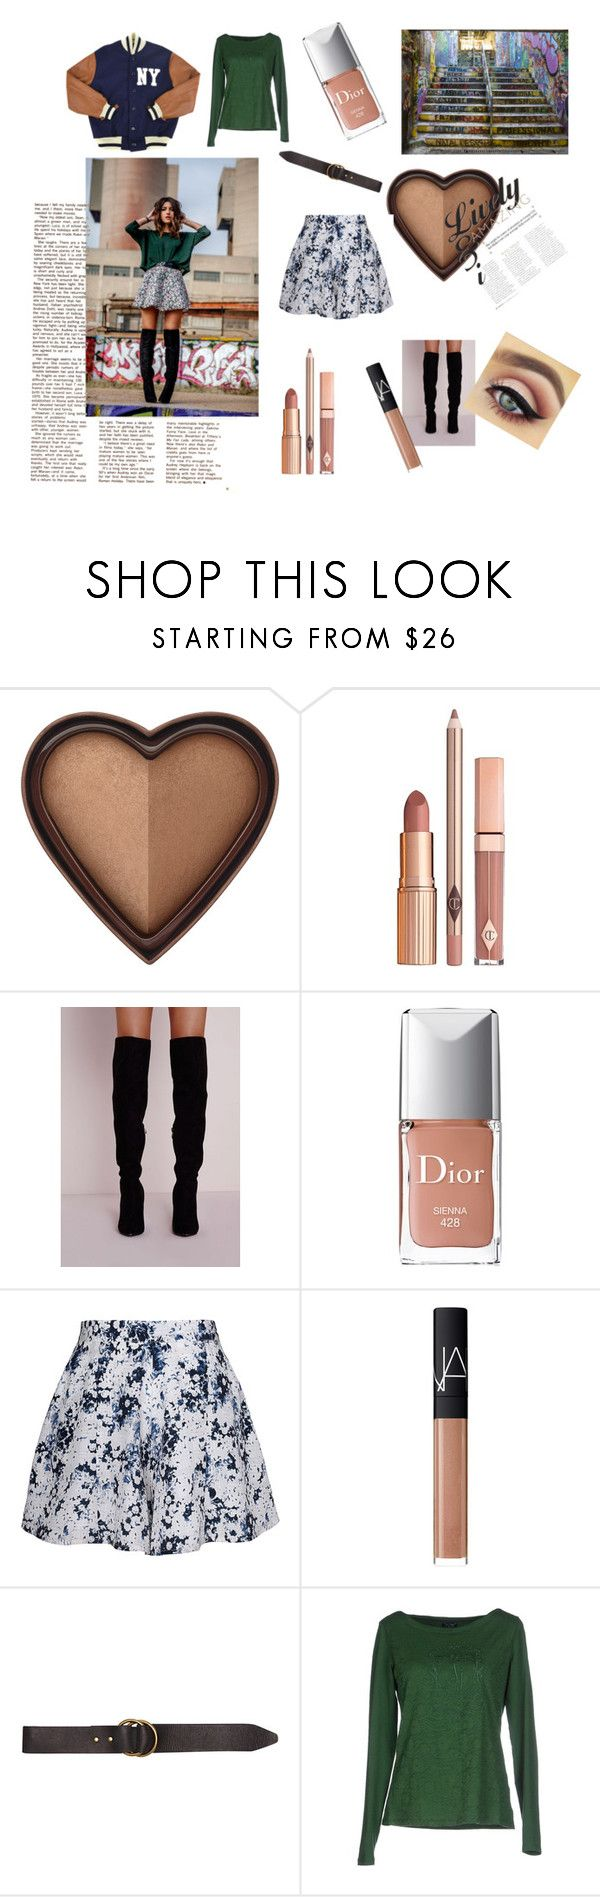 """Fashion Graffiti"" by charmed03 ❤ liked on Polyvore featuring Too Faced Cosmetics, Dolce Vita, Christian Dior, Olive + Oak, NARS Cosmetics, Billabong and Armani Jeans"